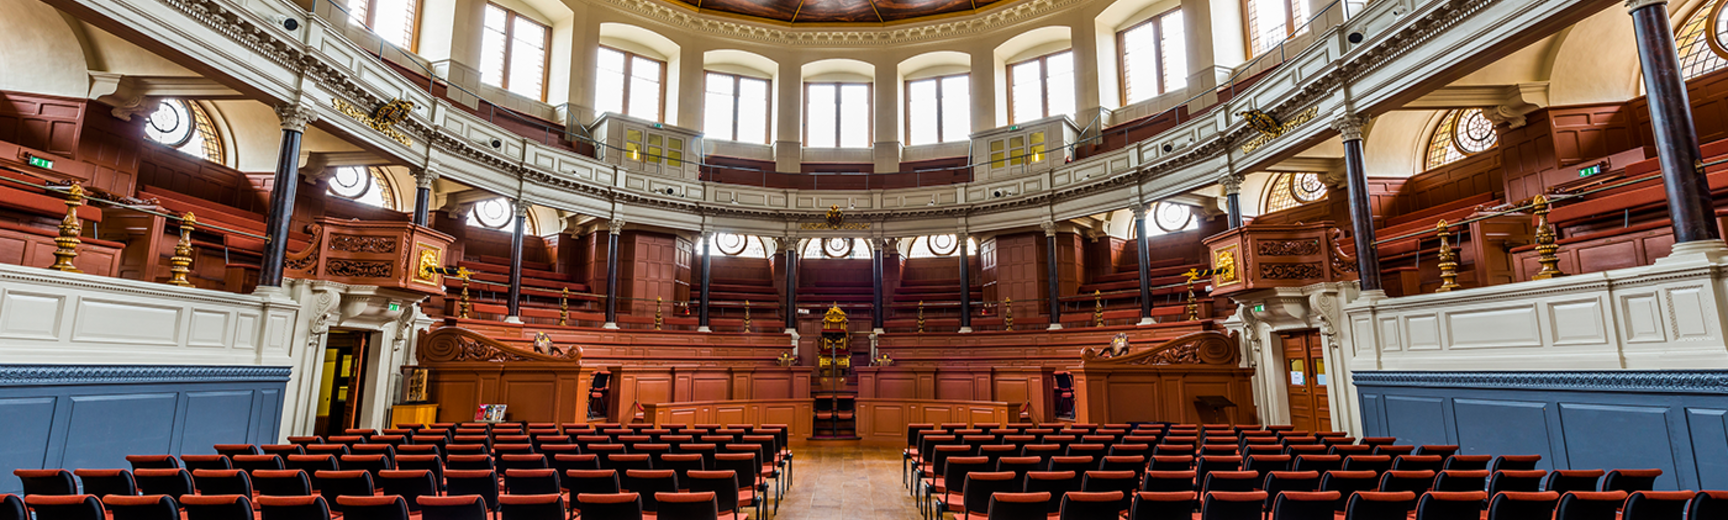 sheldonian concert layout